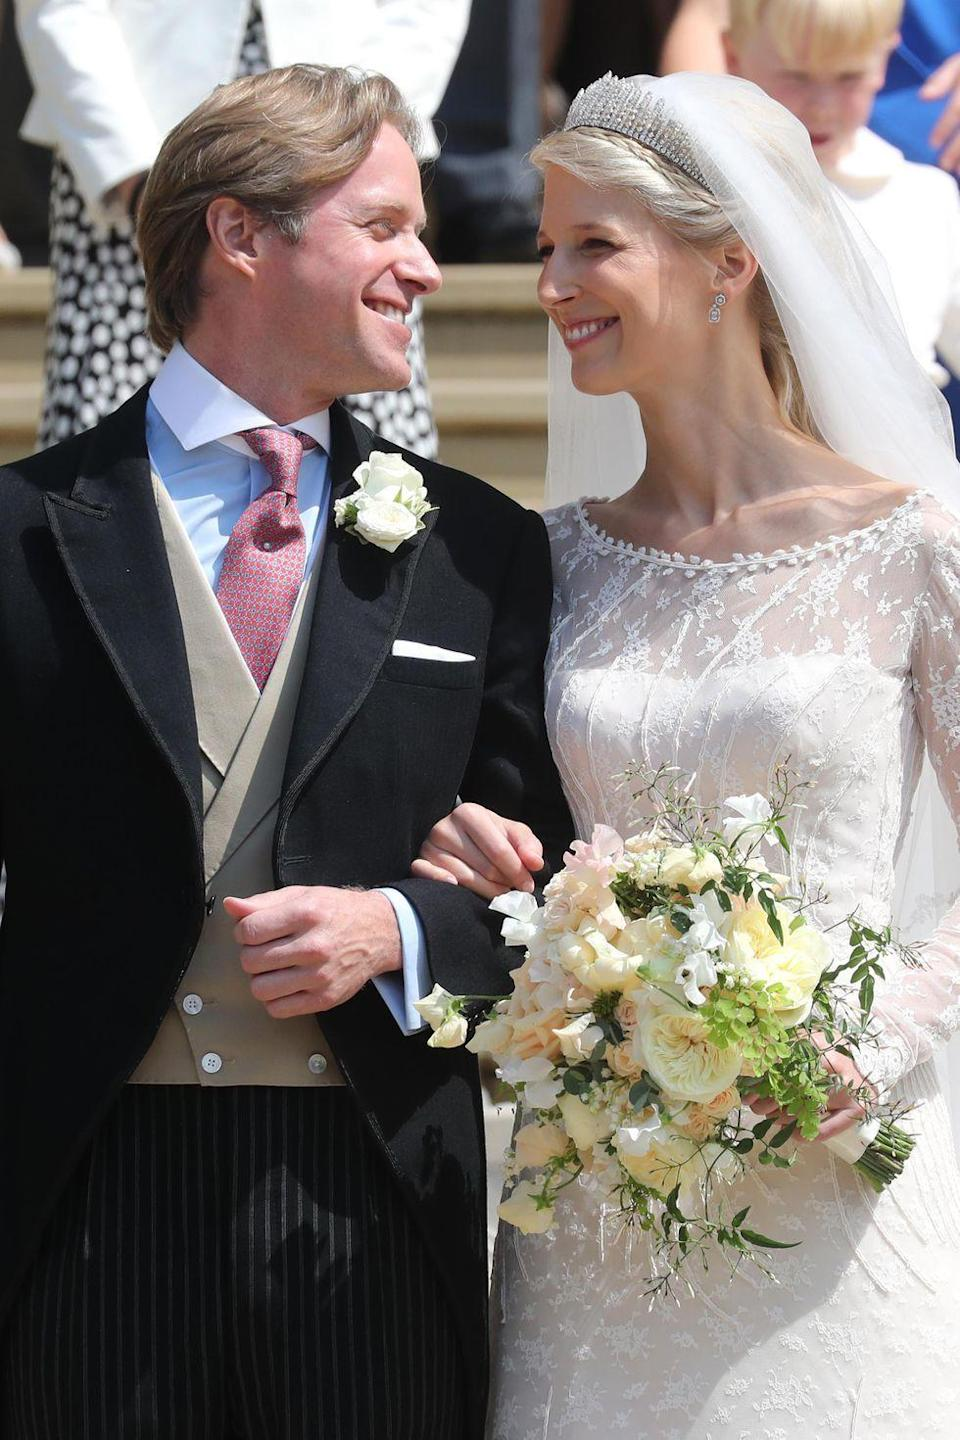 "<p><strong>Wedding date: </strong>May 18, 2019</p><p><strong>Wedding tiara: </strong>Gabriella chose a Russian fringe style diamond tiara, often called the <a href=""http://www.thecourtjeweller.com/2014/12/the-kent-city-of-london-fringe-tiara.html"" rel=""nofollow noopener"" target=""_blank"" data-ylk=""slk:Kent City of London Fringe tiara"" class=""link rapid-noclick-resp"">Kent City of London Fringe tiara</a>, to complete her wedding day look. </p>"